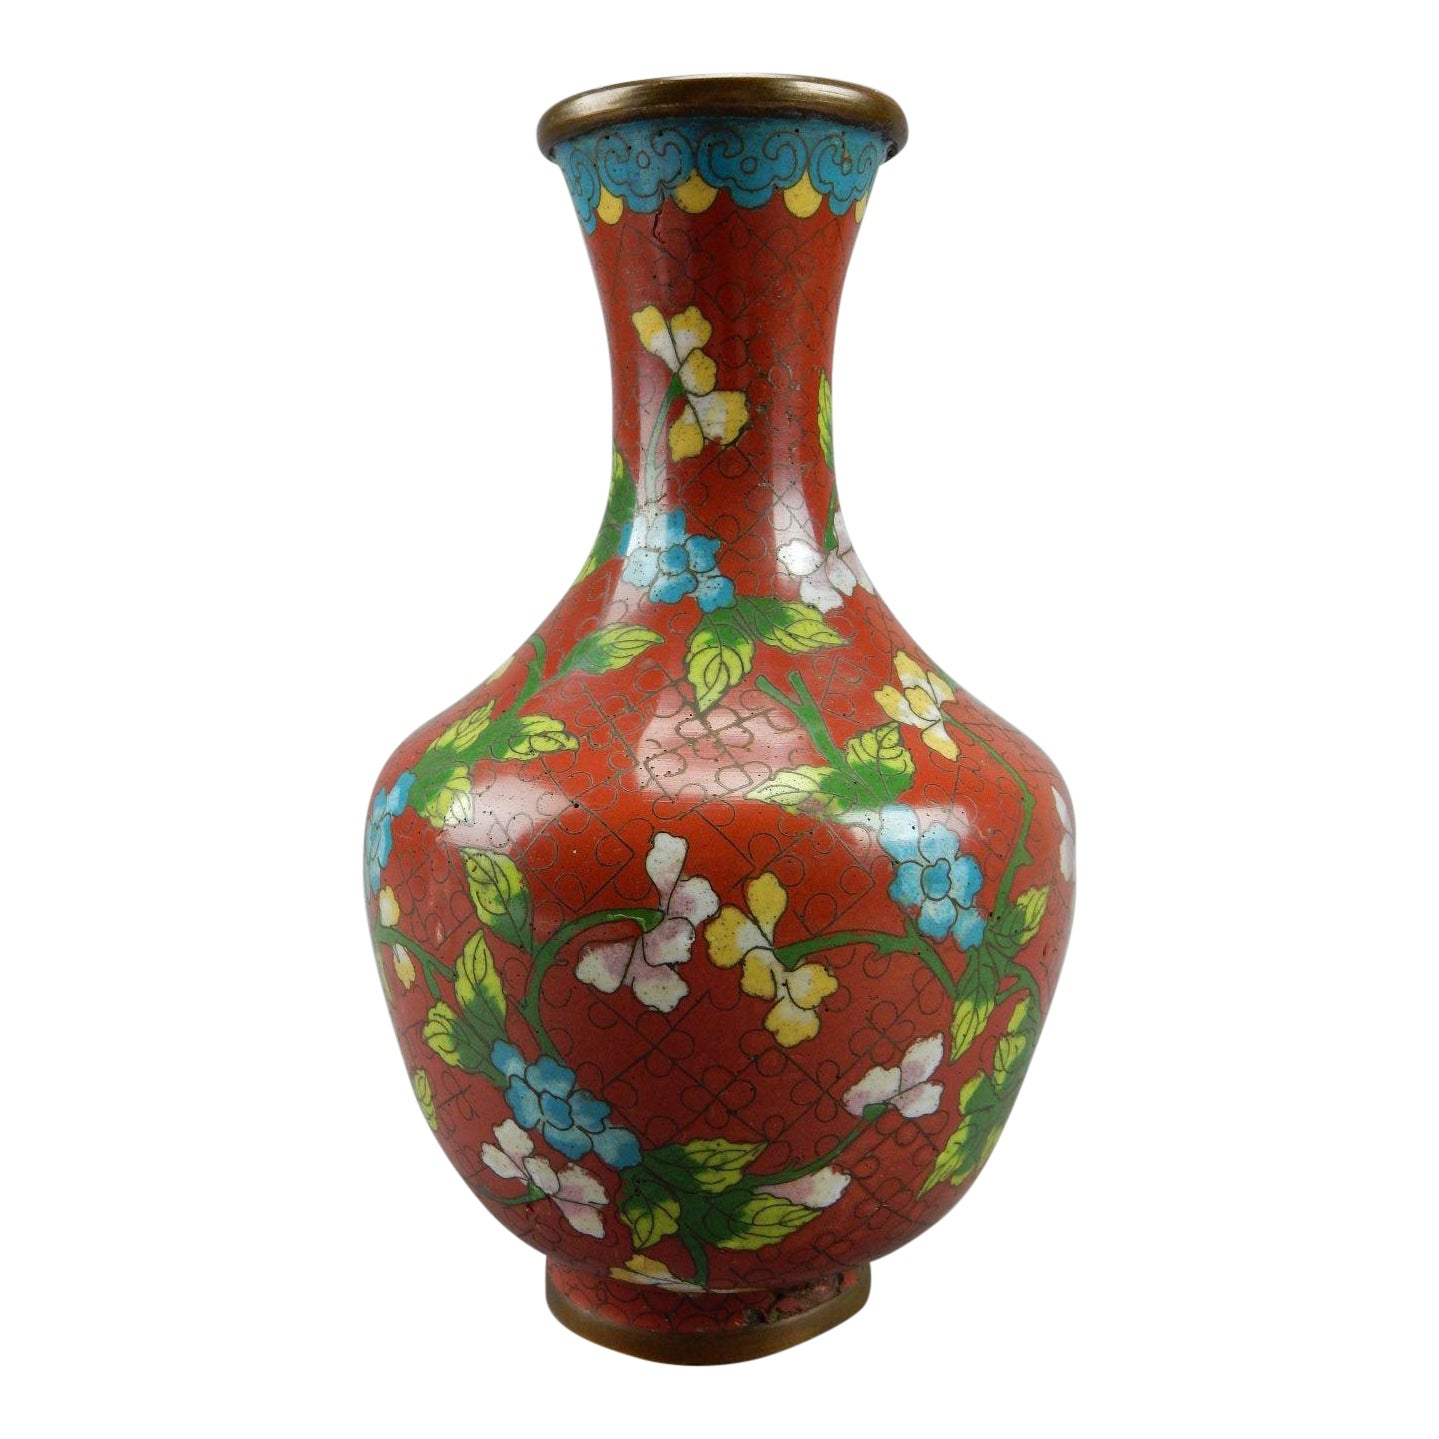 Antique Chinese Cloisonne Vase Chairish